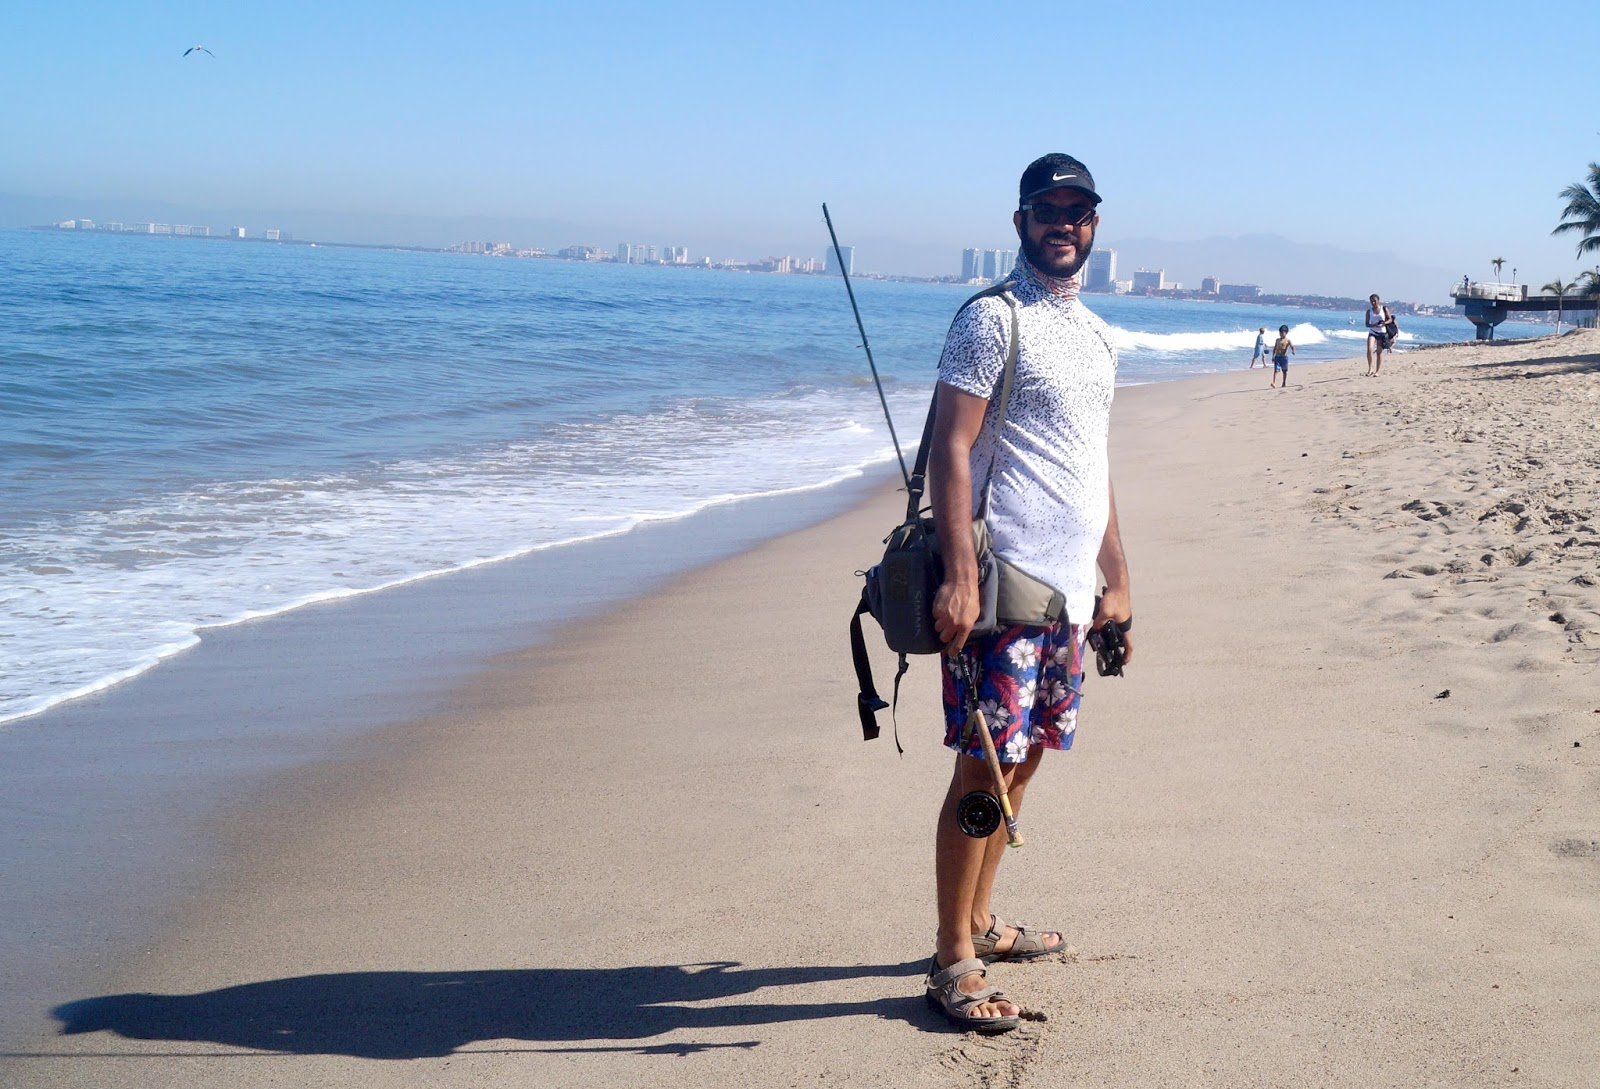 Ebi fisher saltwater fly fishing puerto vallarta mexico for Fishing in puerto vallarta